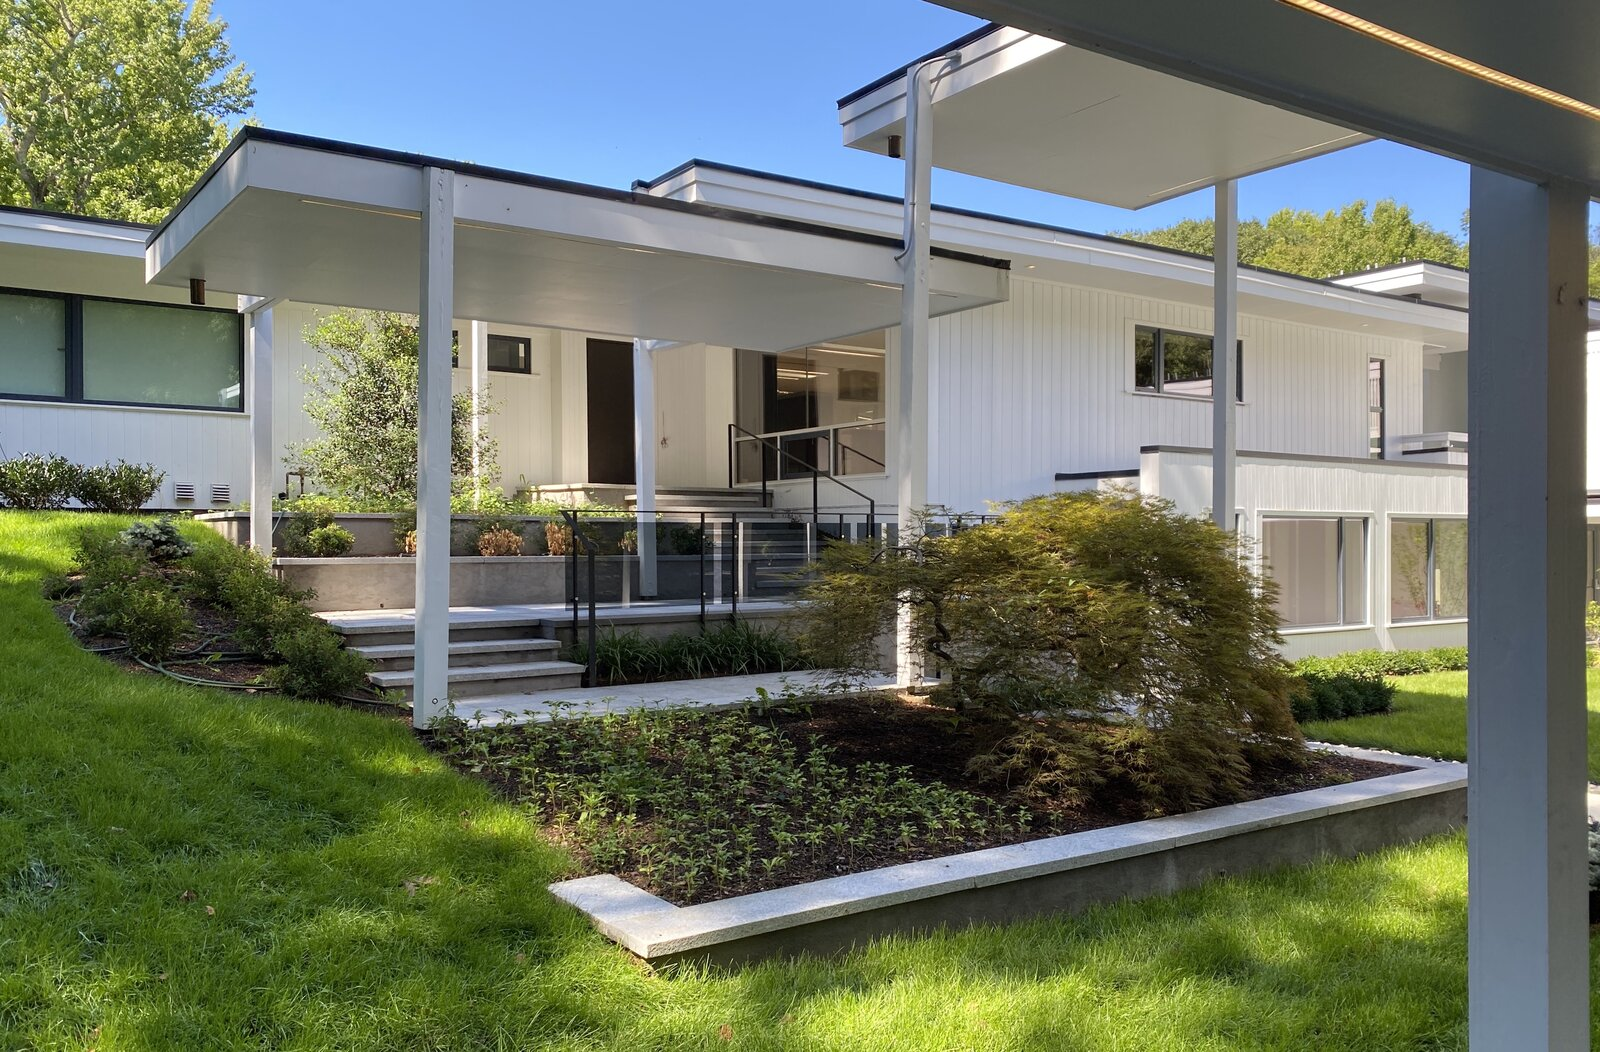 Modern home with Exterior, Wood Siding Material, Flat RoofLine, and House Building Type. Entrance and canopies Photo 3 of A Gut Renovated MidCentury Modern Green Energy Home for Luxury Winter Living for $4.65m